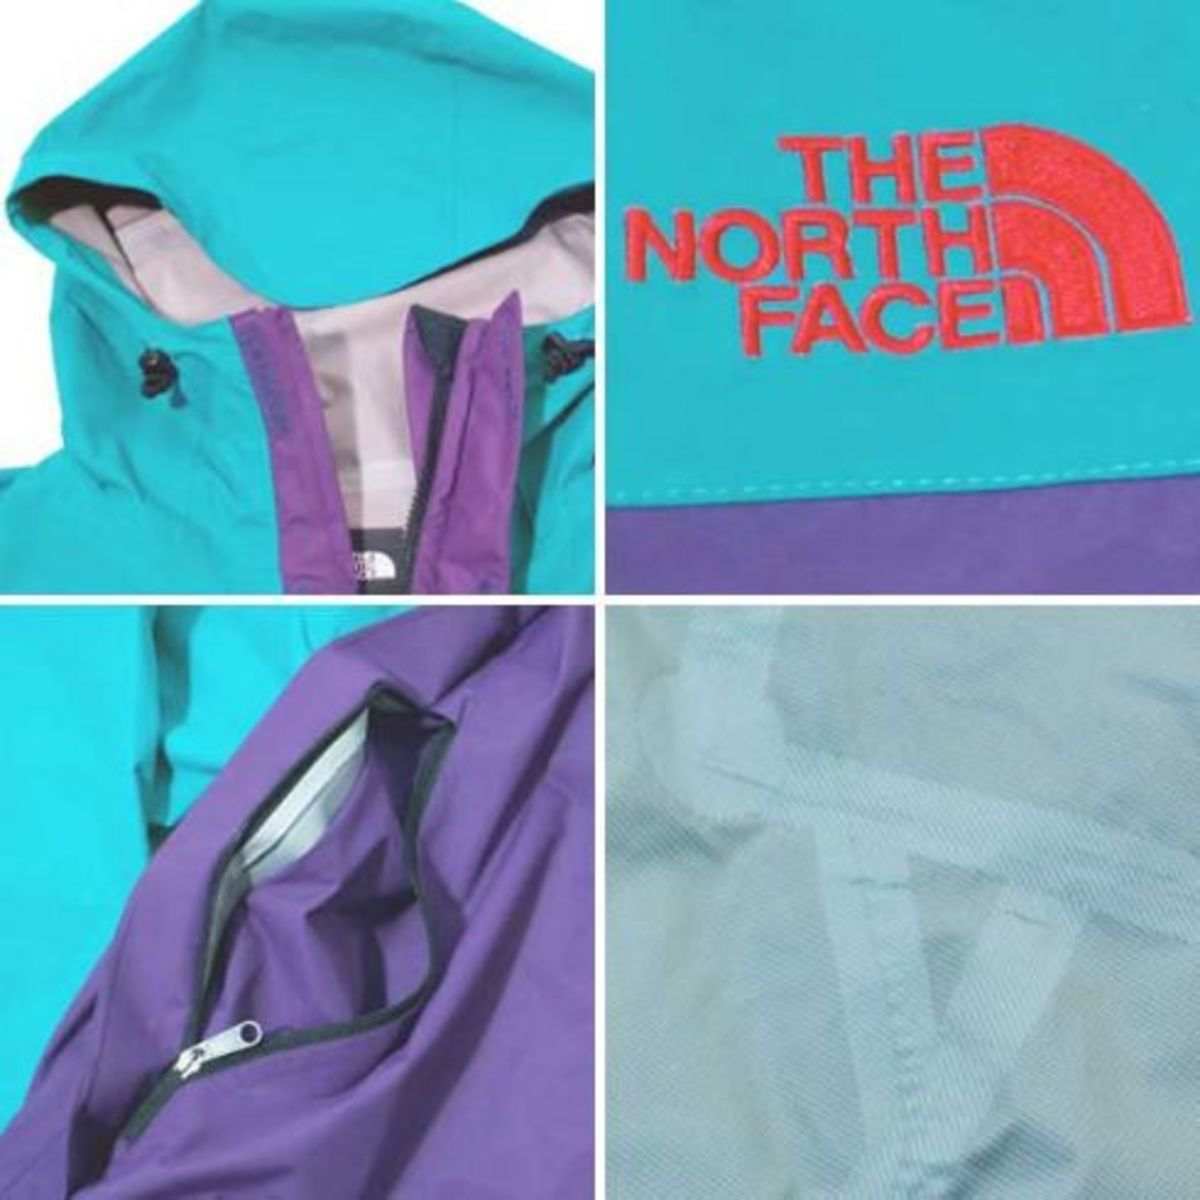 atmos x The North Face - Spring 2008 Collection - 1